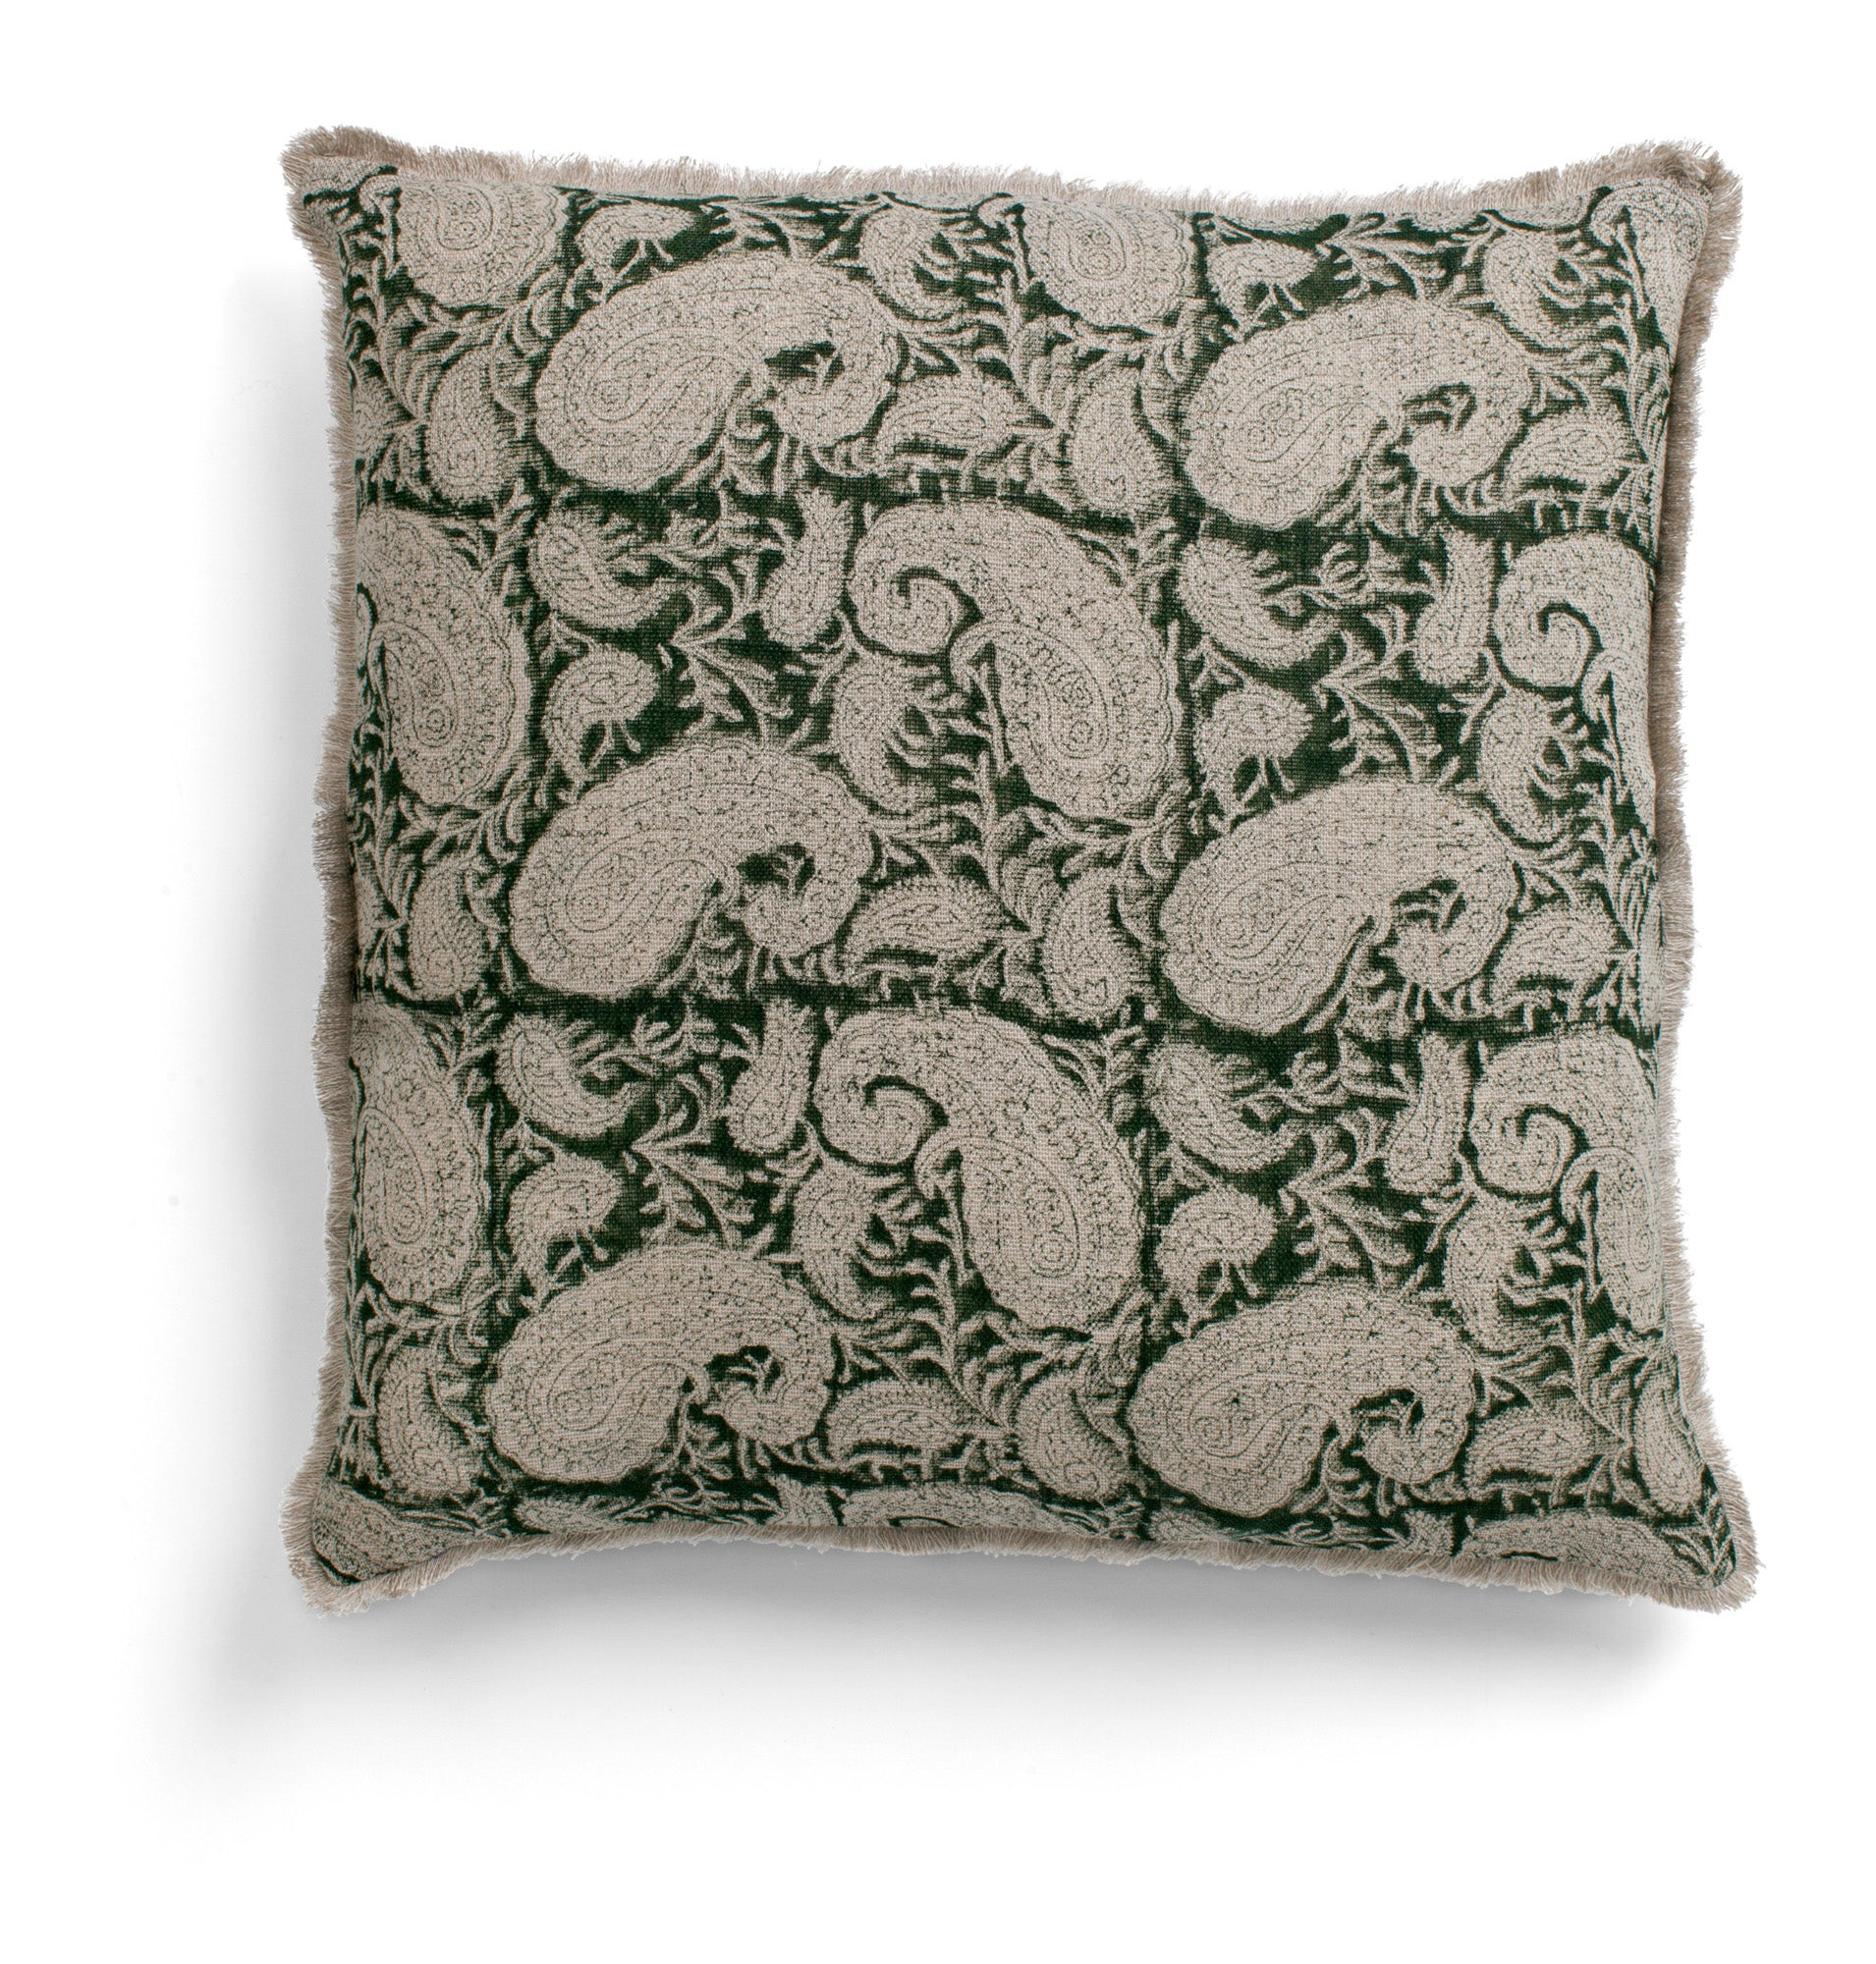 Linen cushion with Big Paisley® print in Green